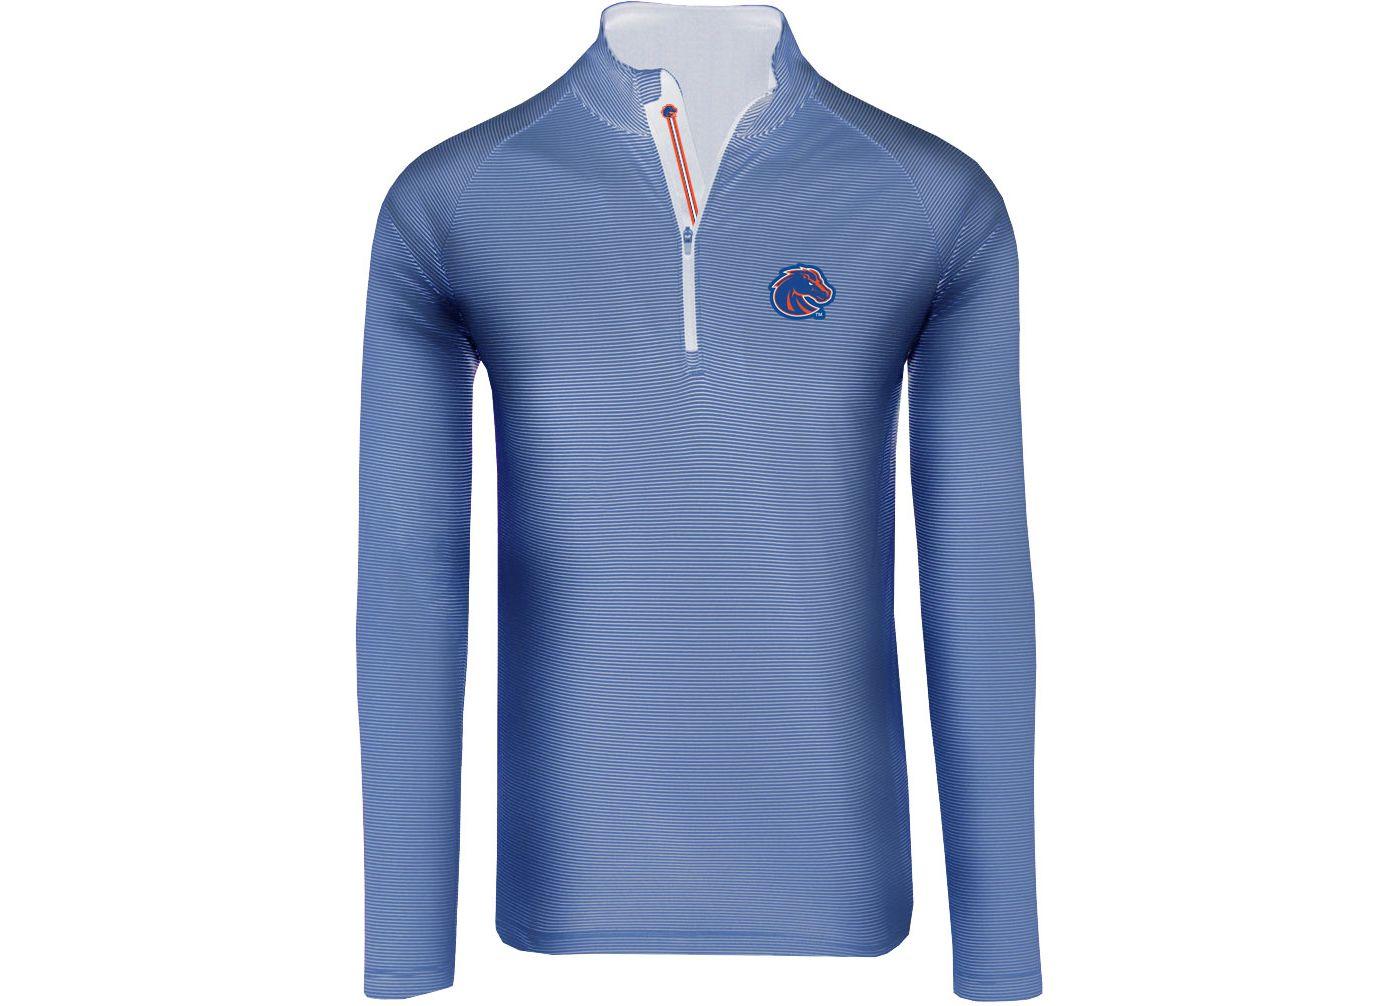 Levelwear Men's Boise State Broncos Blue Orion Quarter-Zip Shirt